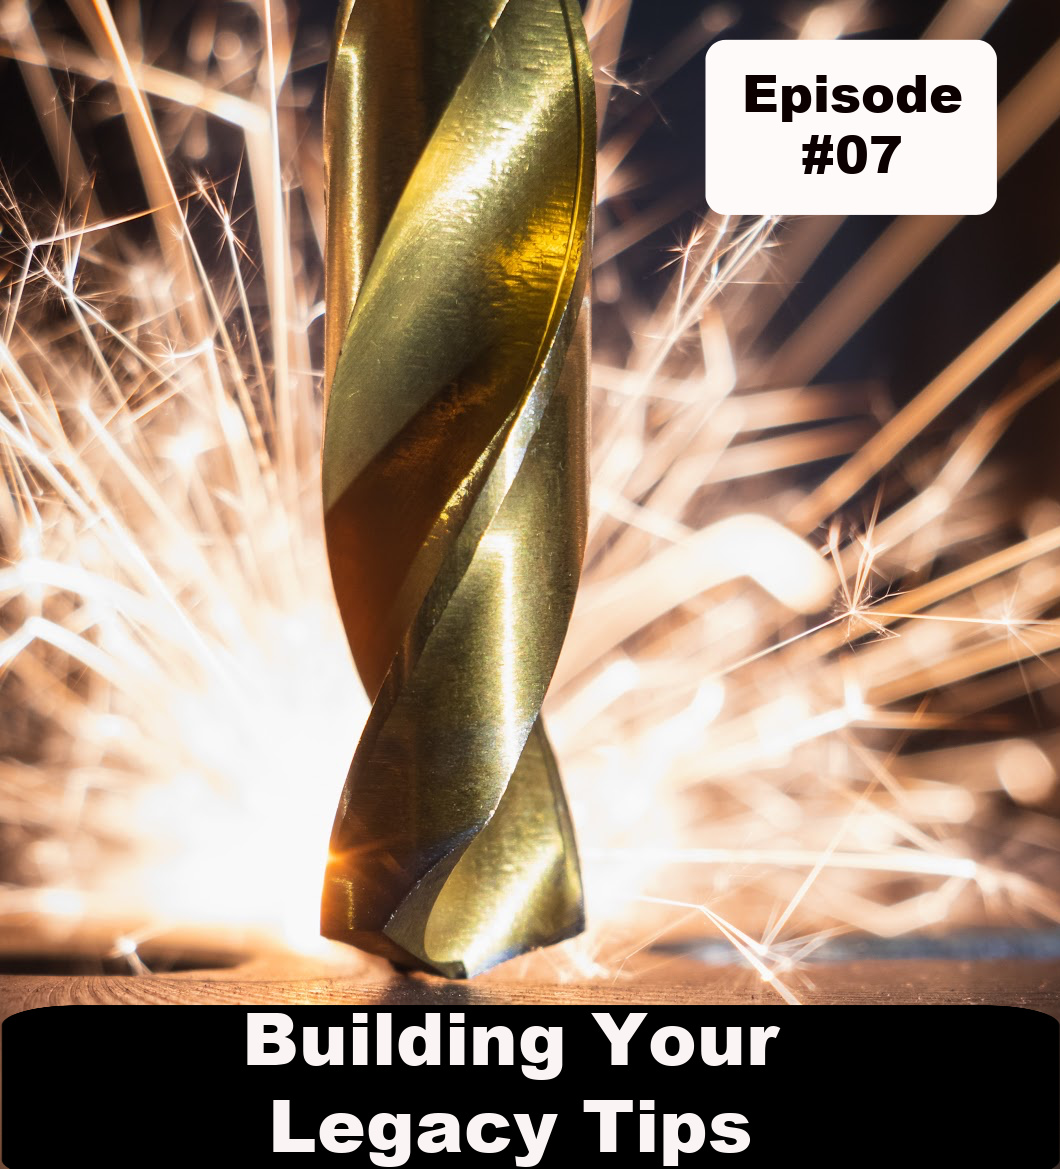 Building Your Legacy Tips-Ep#07 Preparation